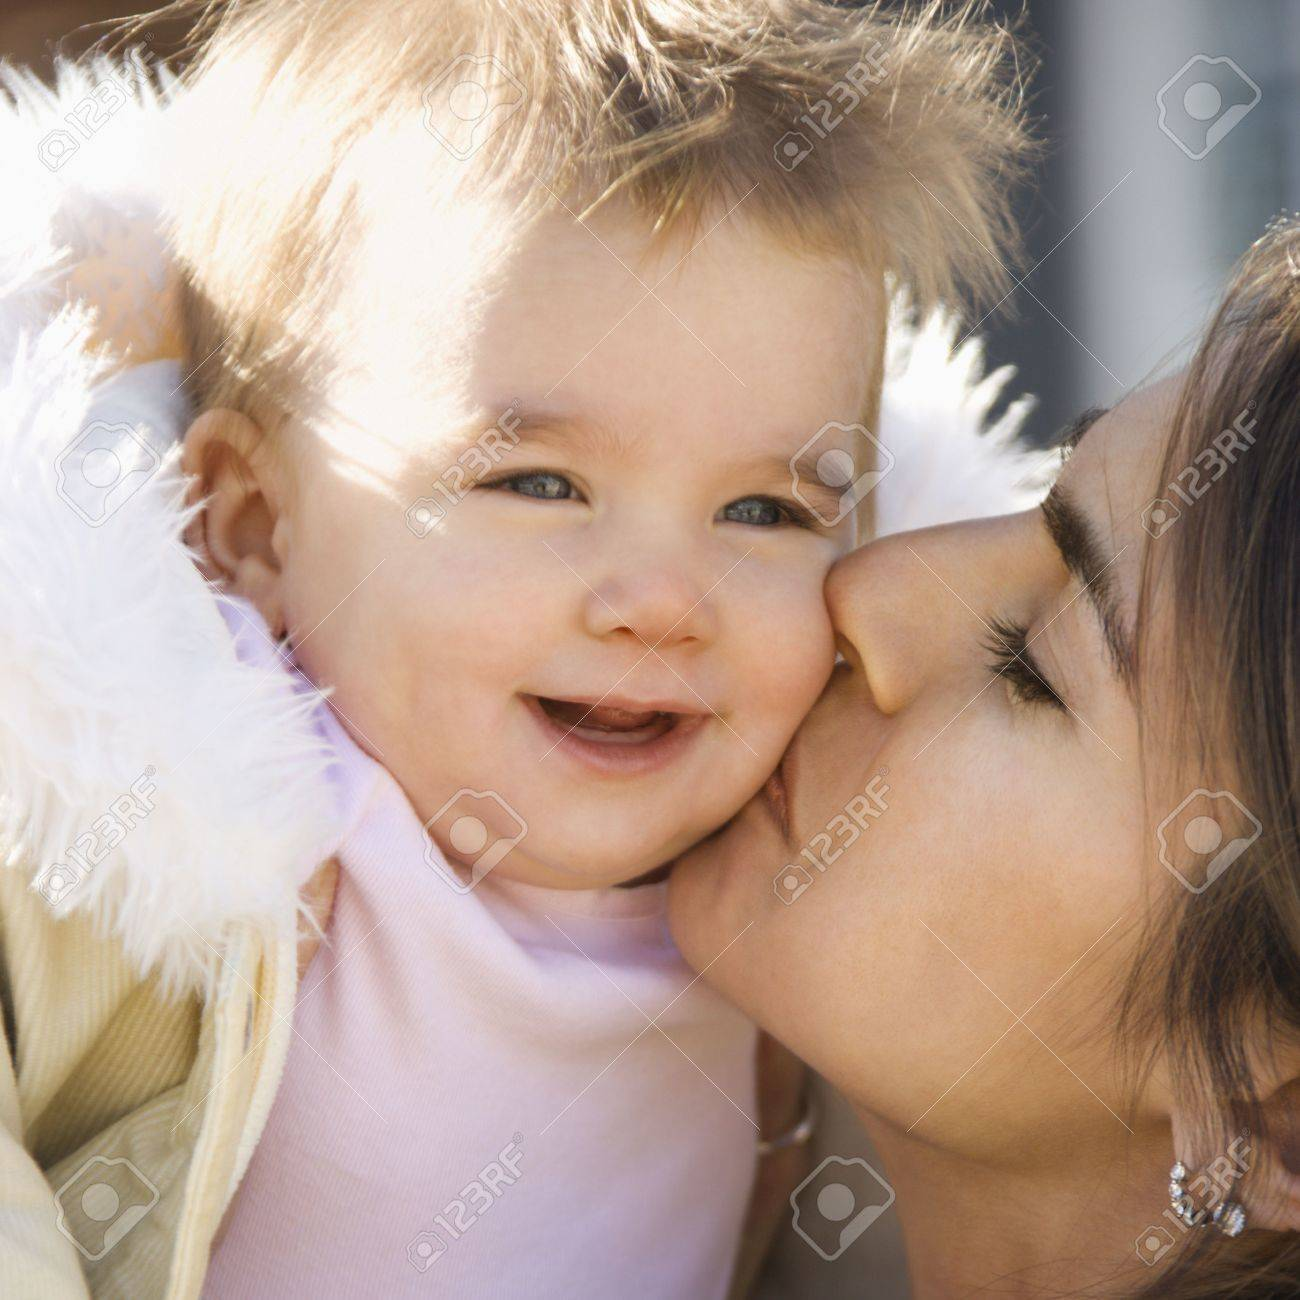 Caucasian mother holding and kissing smiling baby girl. Stock Photo - 2555185